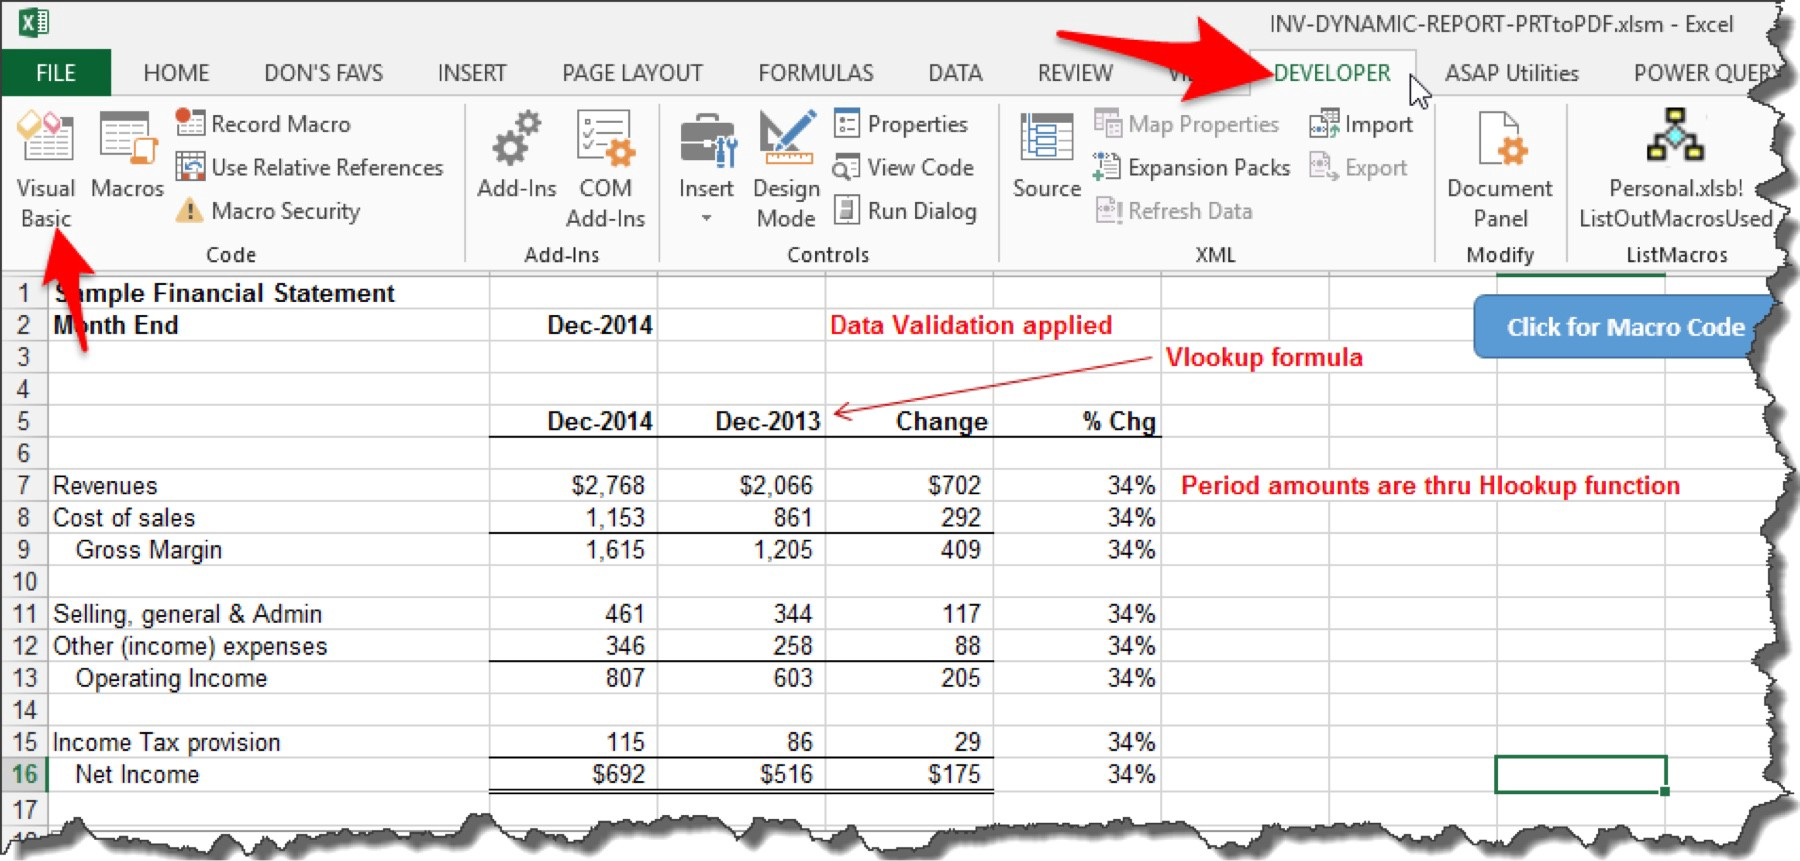 Microsoft Excel: The ONE Automation Macro You Need to Use